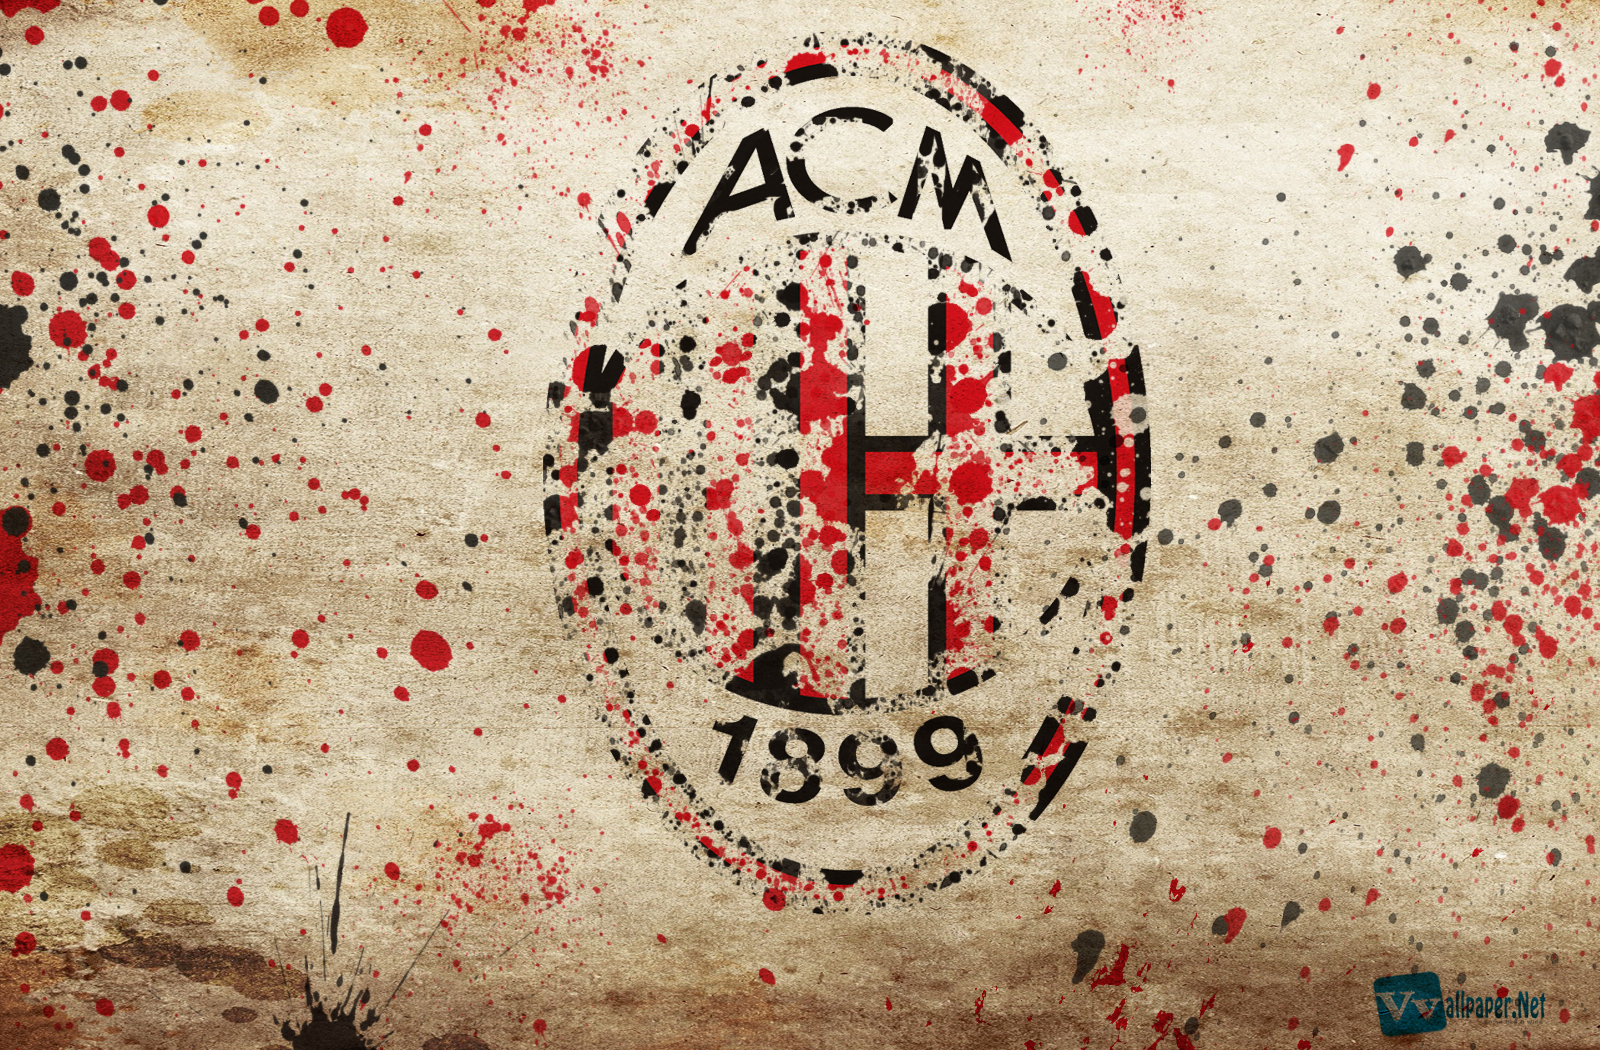 http://3.bp.blogspot.com/--FtcZG29D5Y/UP1y3tXRmRI/AAAAAAAAFH0/LZZKOMTgup0/s1600/AC+Milan+Logo+Wallpaper+High+Definition+2013+12.jpg